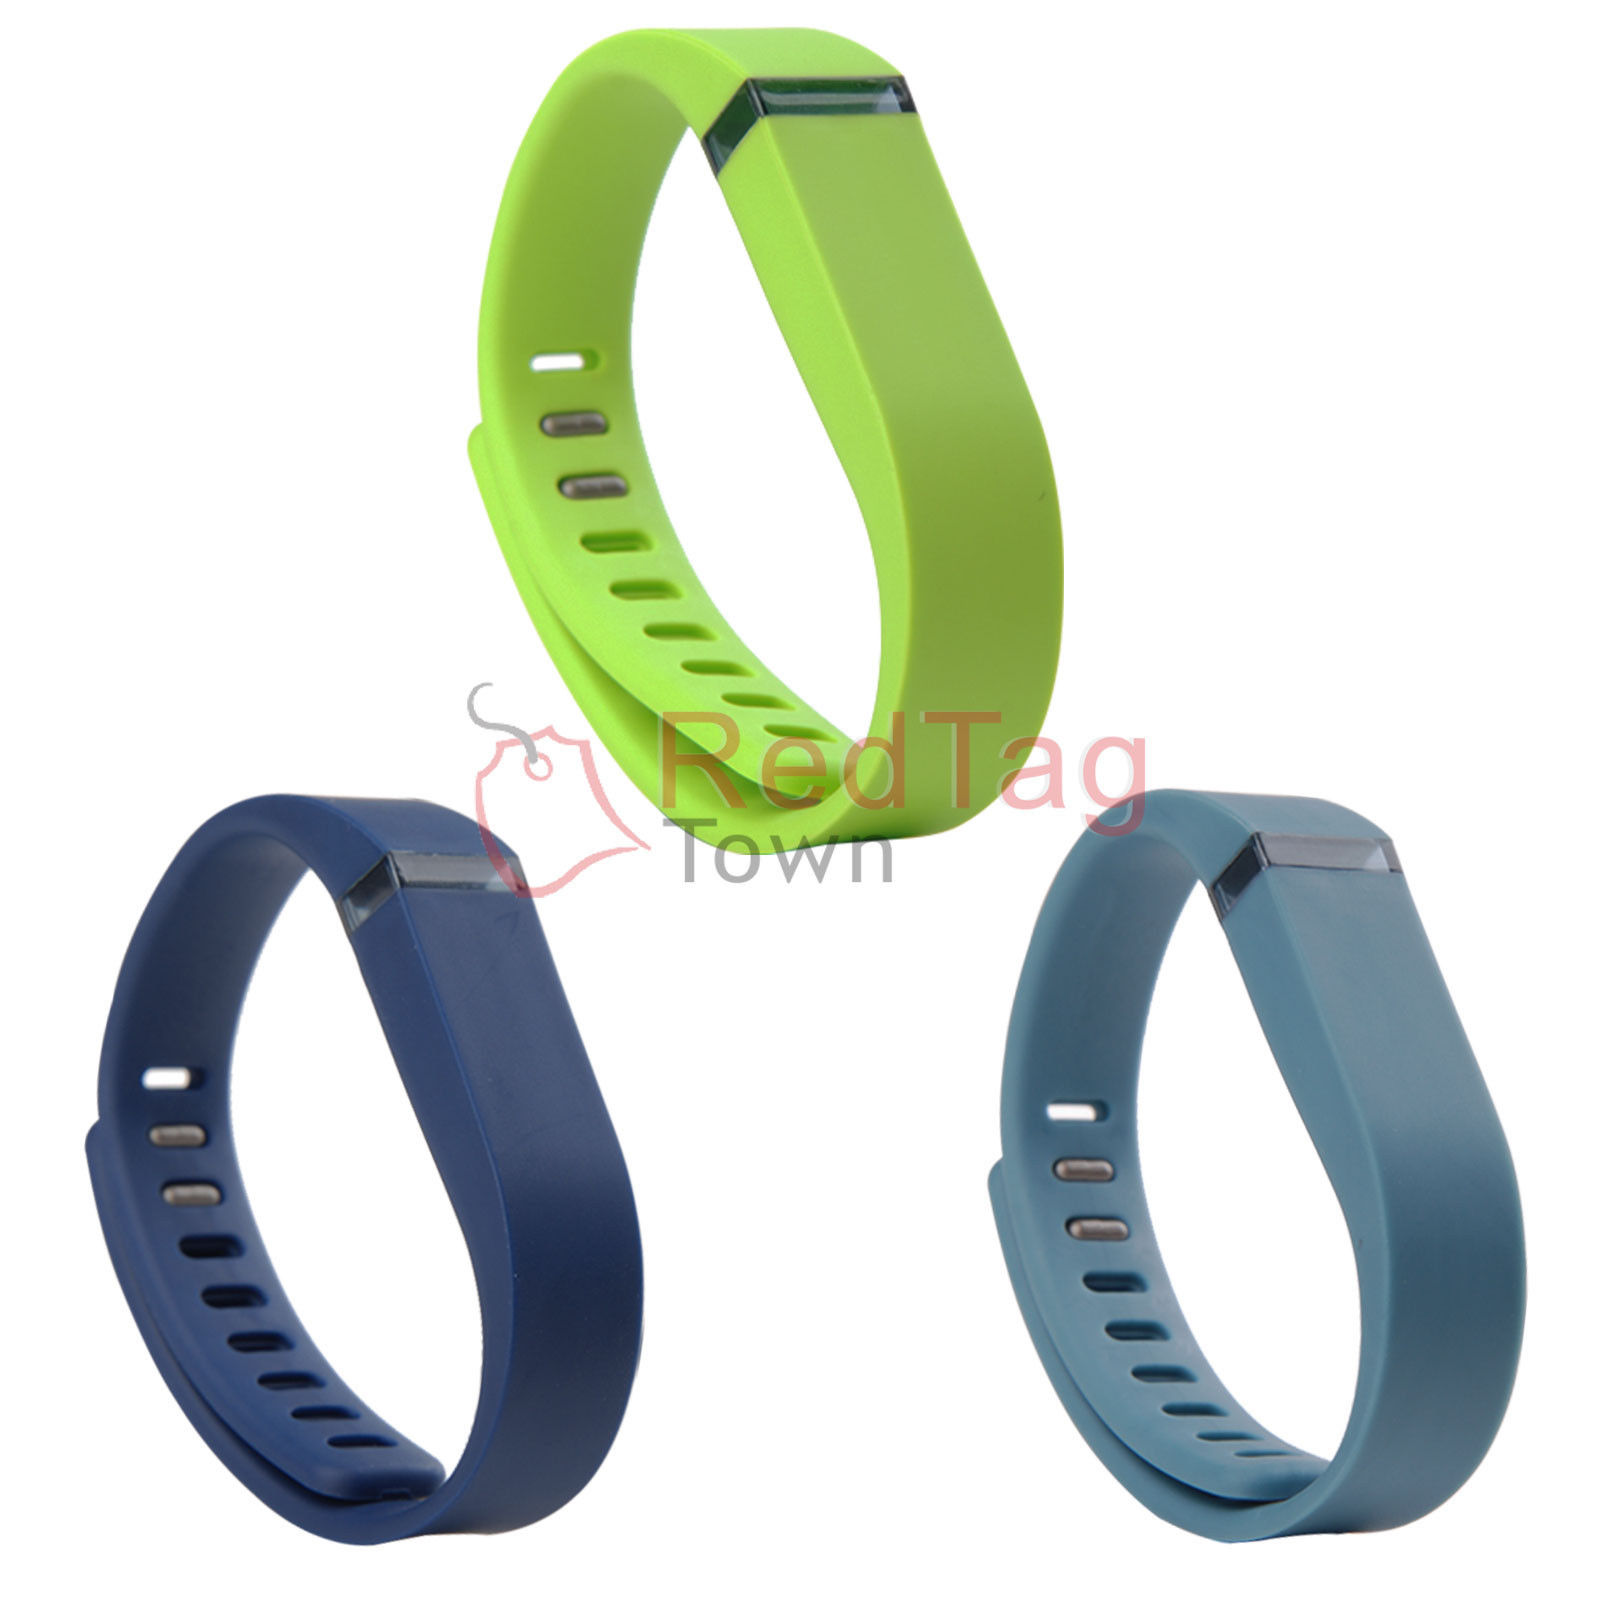 3-Pcs-Large-Size-Replacement-Wrist-Band-For-Fitbit-Flex-Bracelet-With-Clasps-New